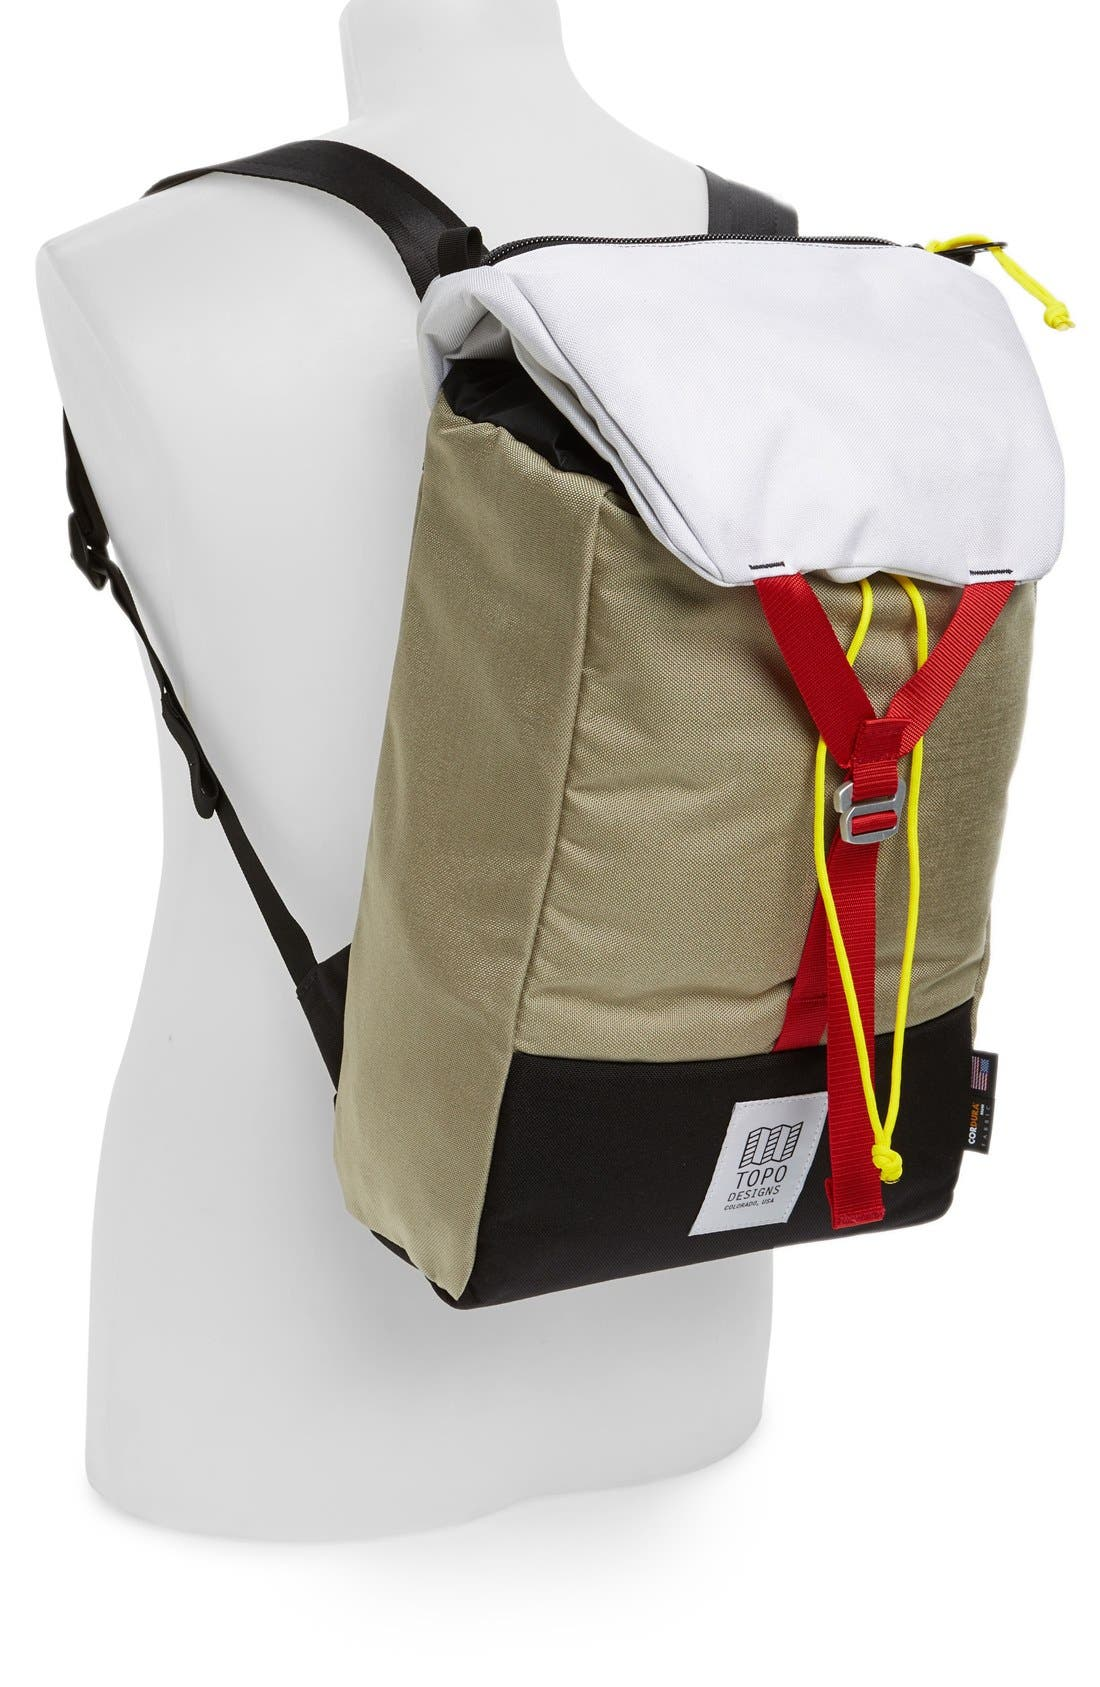 TOPO DESIGNS,                             'Y-Pack' Backpack,                             Alternate thumbnail 3, color,                             031